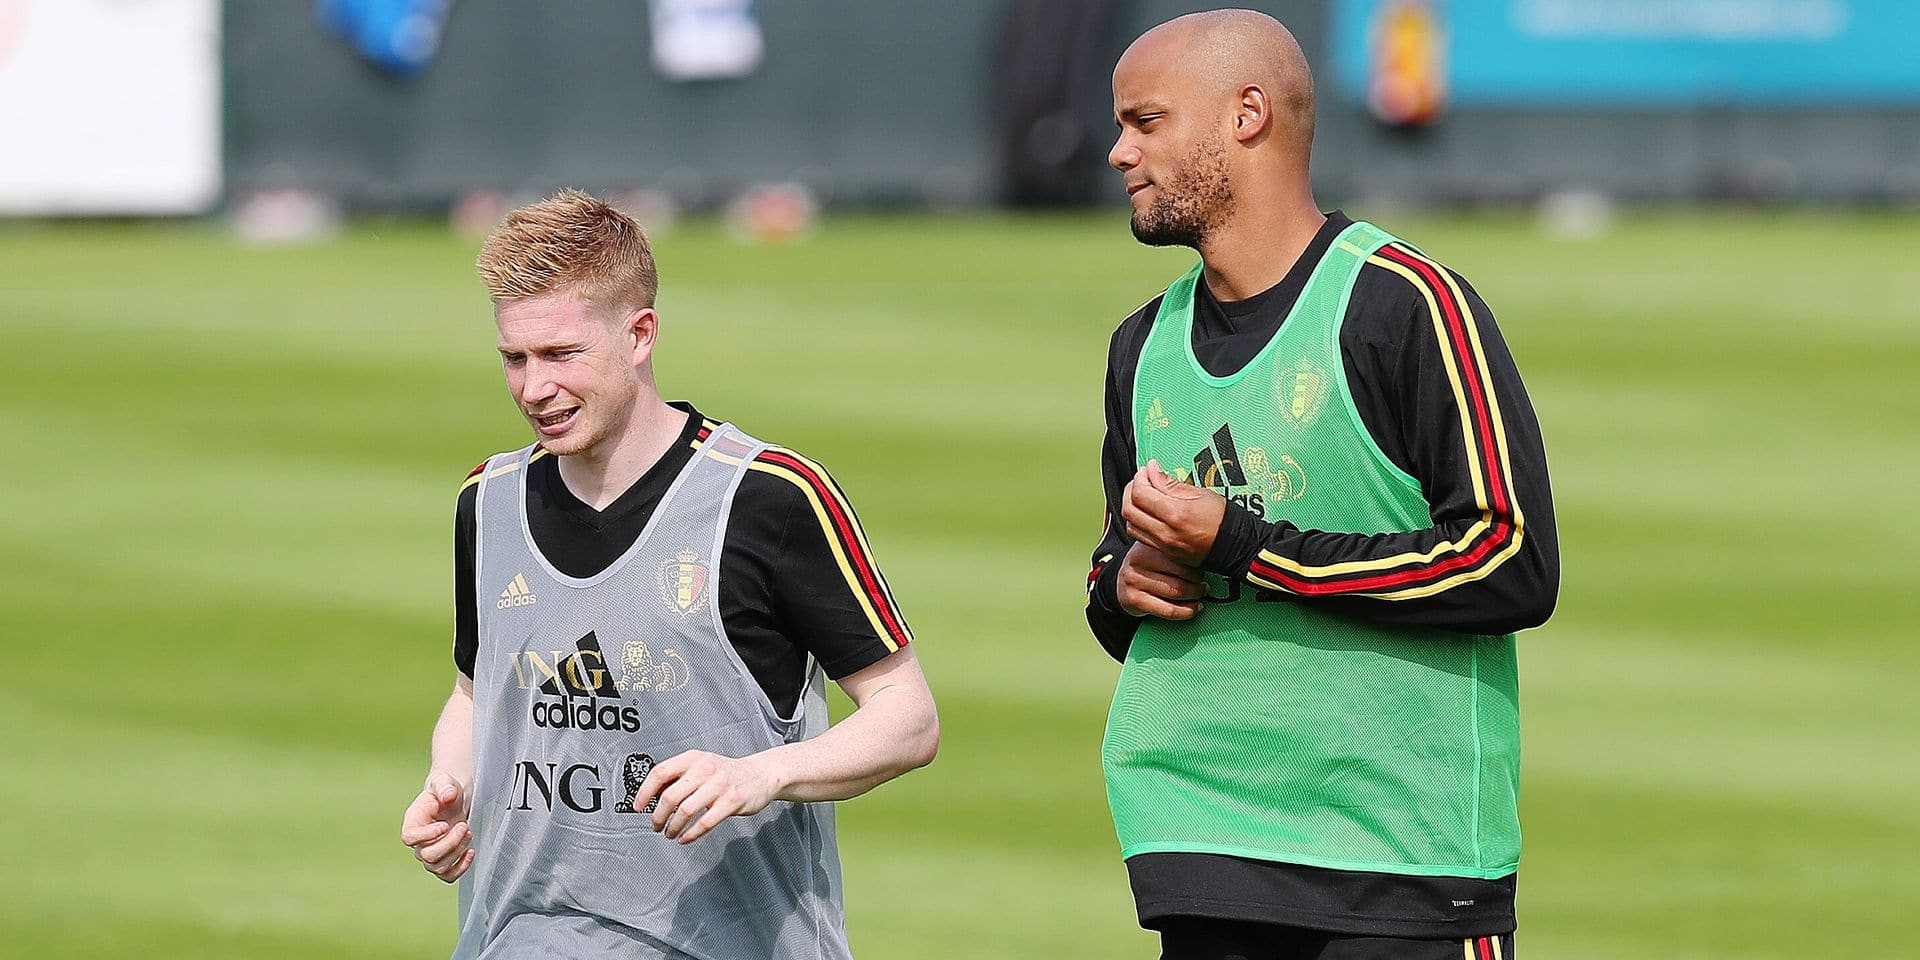 Belgium's Kevin De Bruyne and Belgium's Vincent Kompany pictured during a training session of Belgian national soccer team the Red Devils, Tuesday 04 June 2019. The team will be playing two European Cup 2020 qualification games against Kazachstan and Scotland in Belgium. BELGA PHOTO BRUNO FAHY